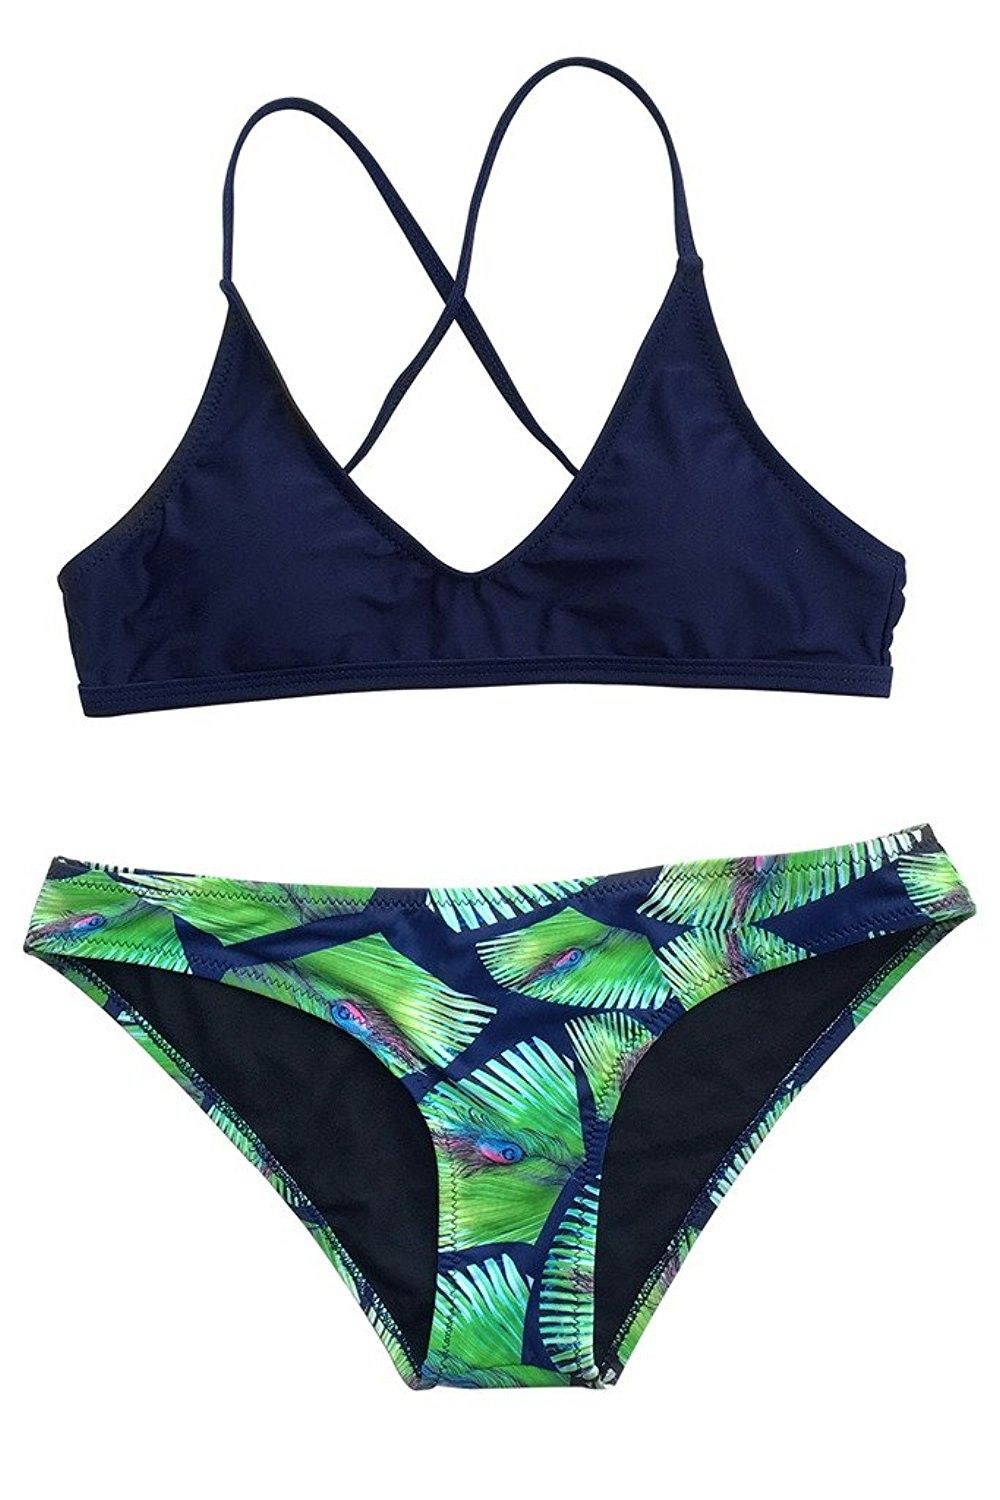 8a3fd00fd Women s Dark Blue Two Piece Padded Bikini Swimsuit with Peacock Feather  Printing - CT1836HMKO6